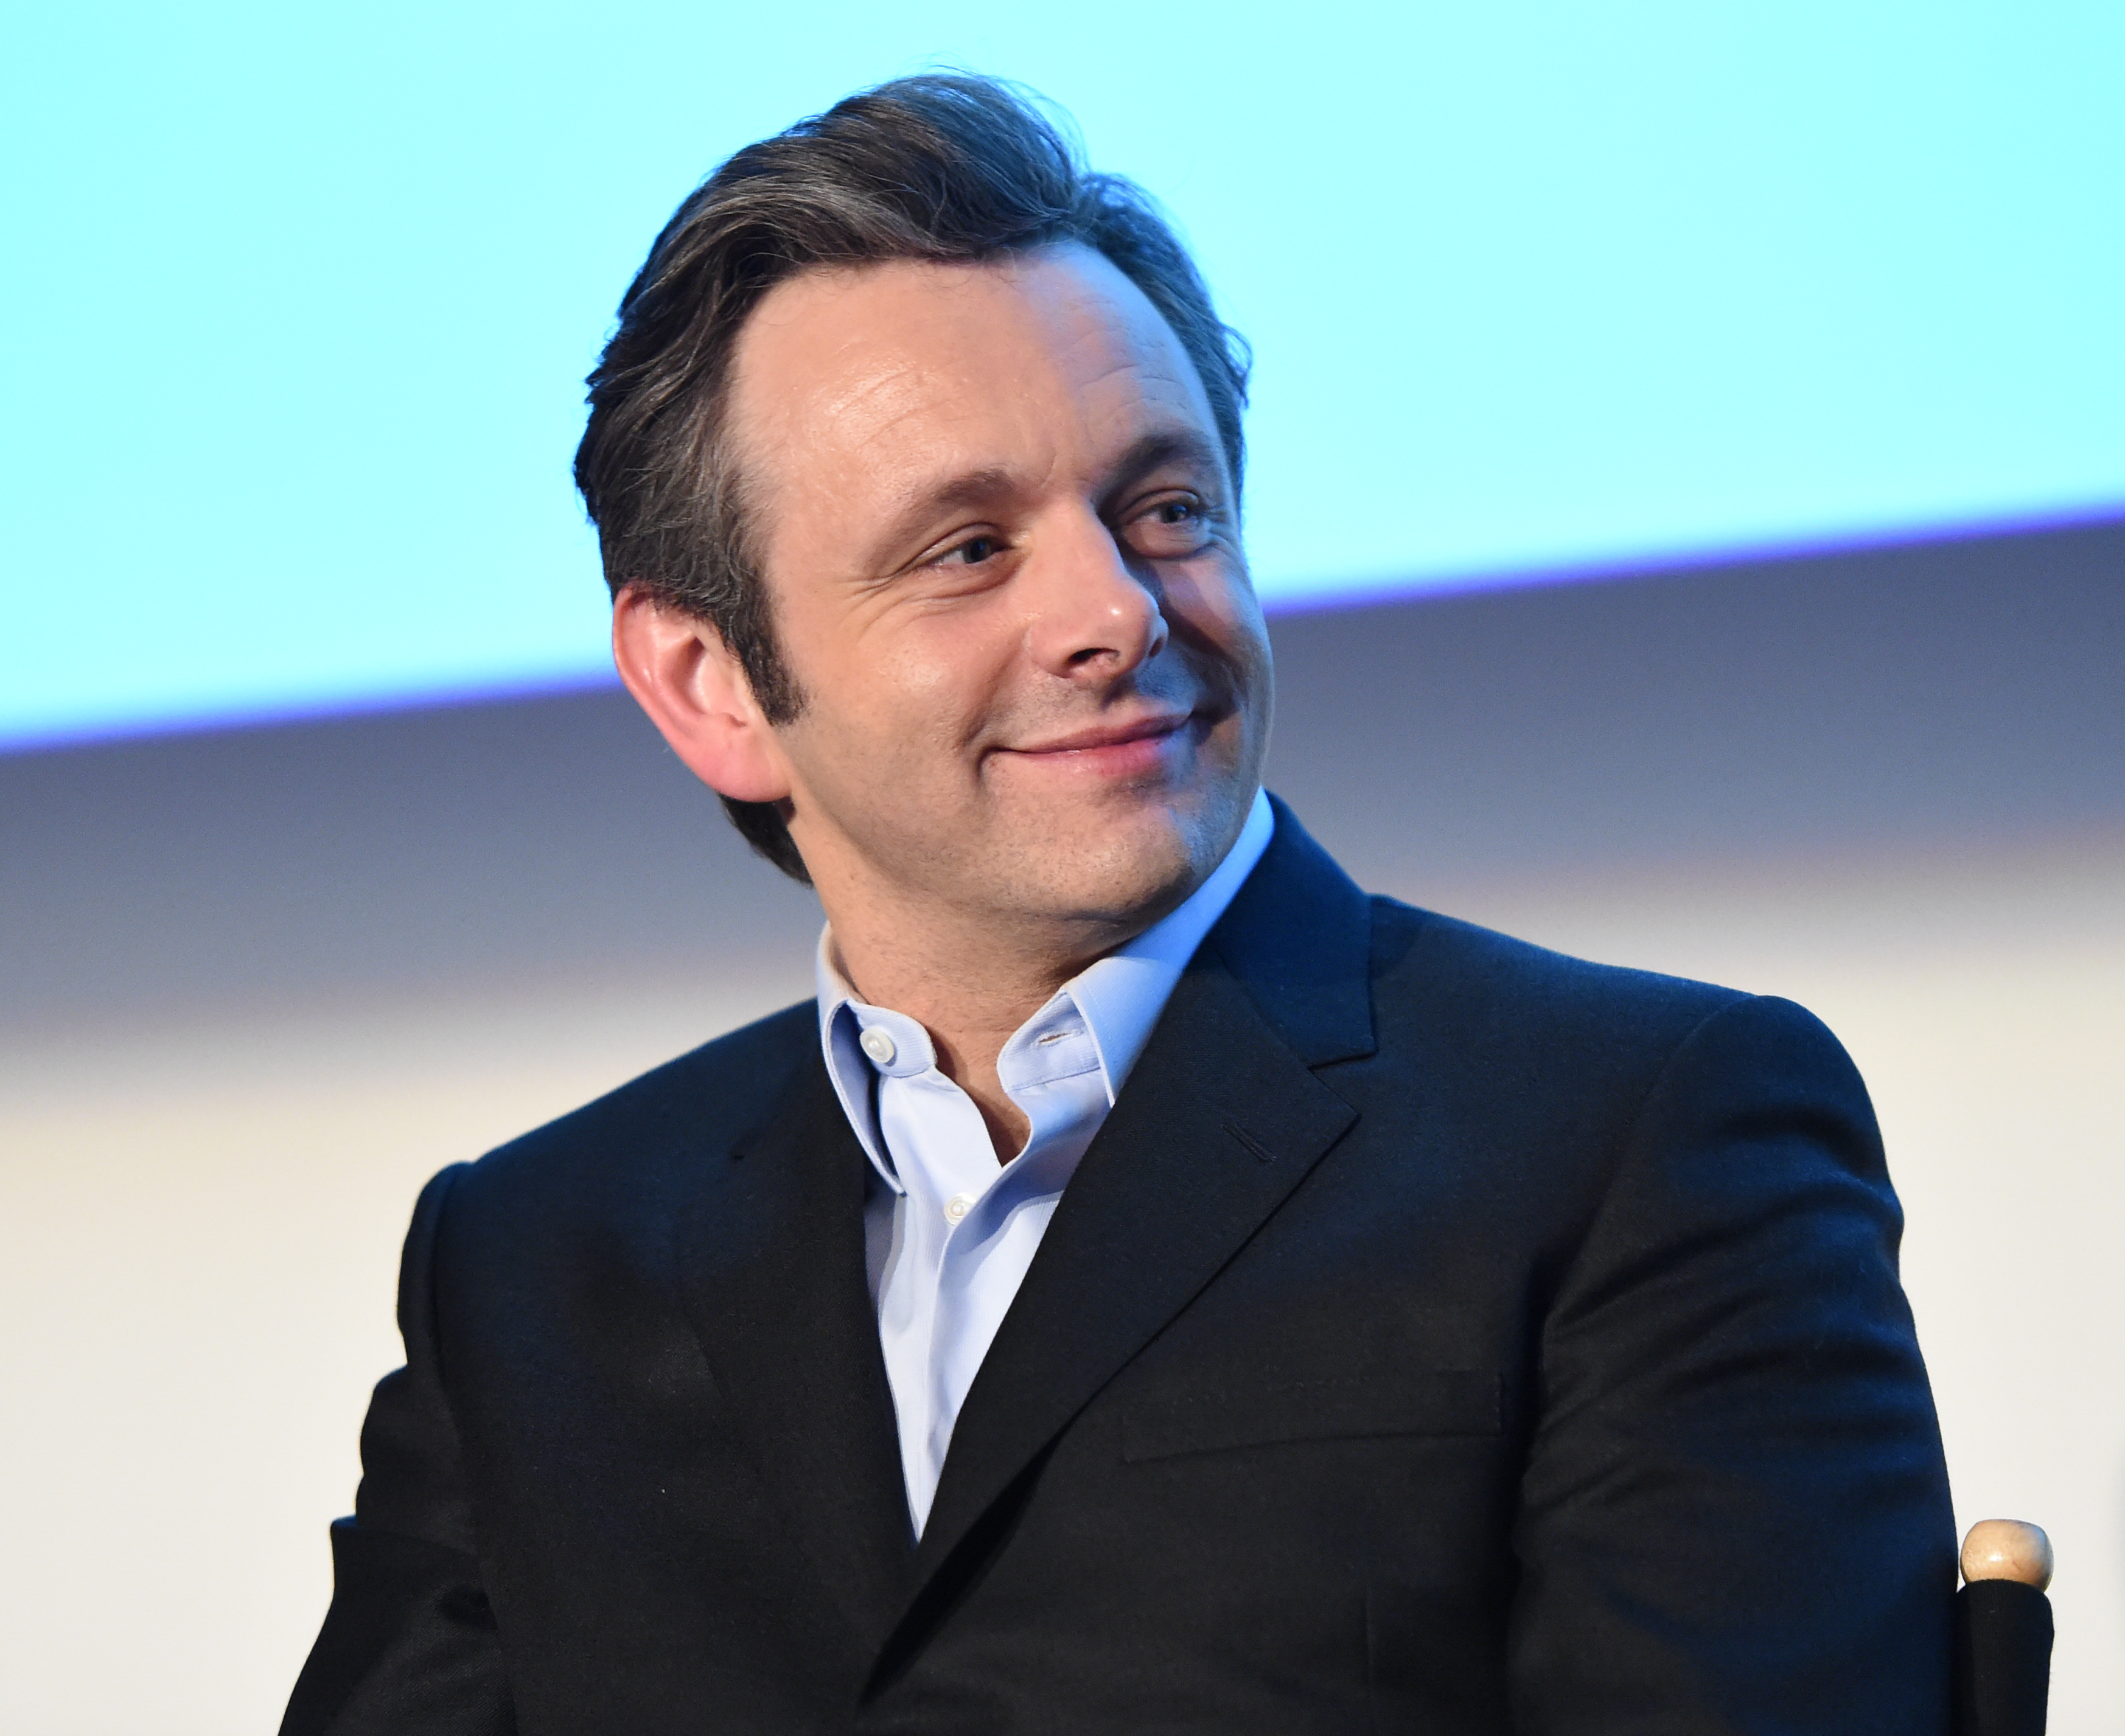 Everyone relax, Michael Sheen isn't quitting acting to become an activist